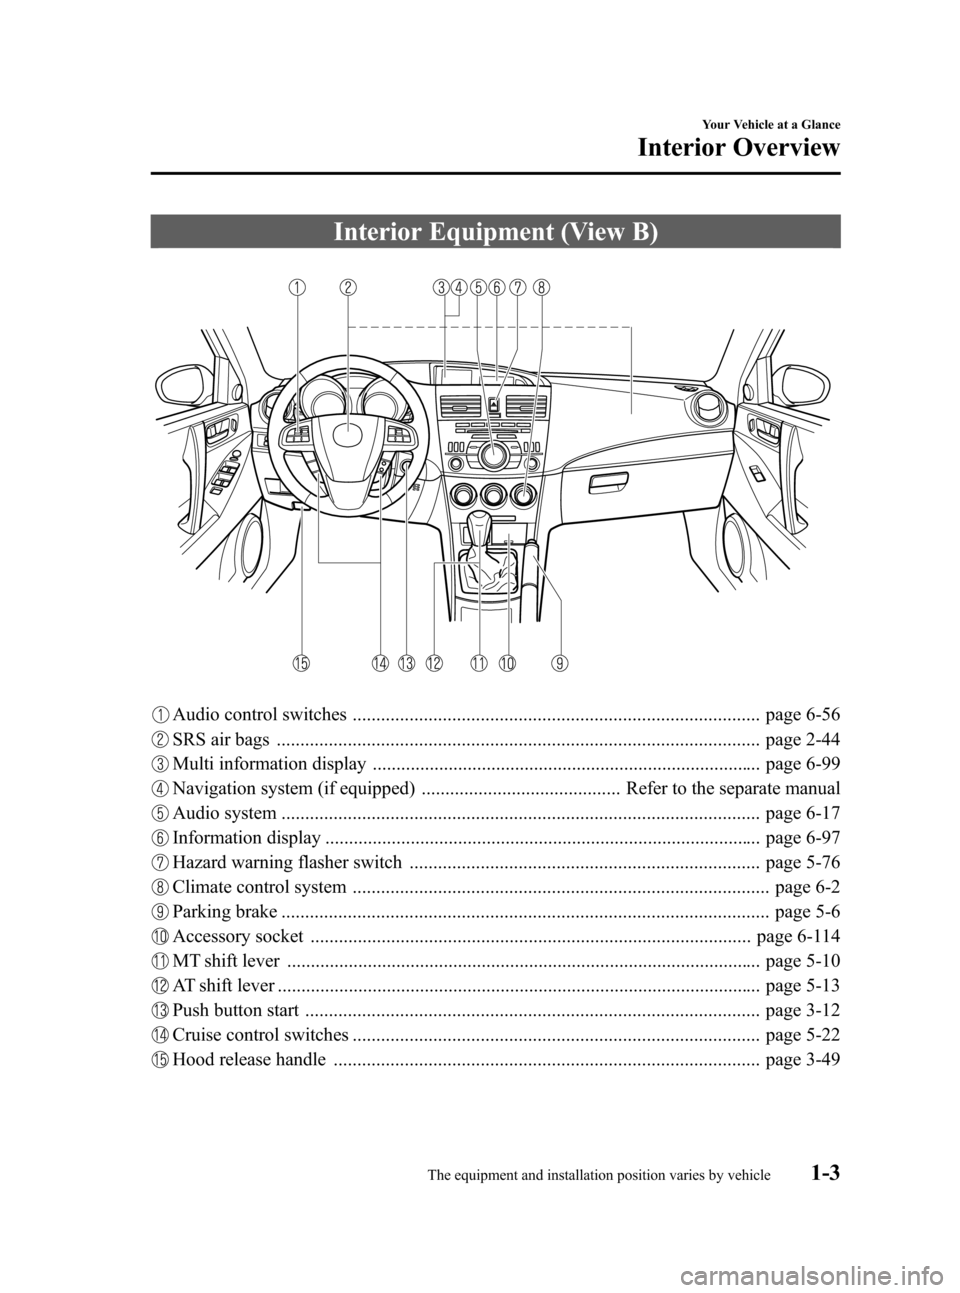 MAZDA MODEL 3 HATCHBACK 2012  Owners Manual (in English) Black plate (9,1) Interior Equipment (View B) Audio control switches ...................................................................................... page 6-56 SRS air bags .....................